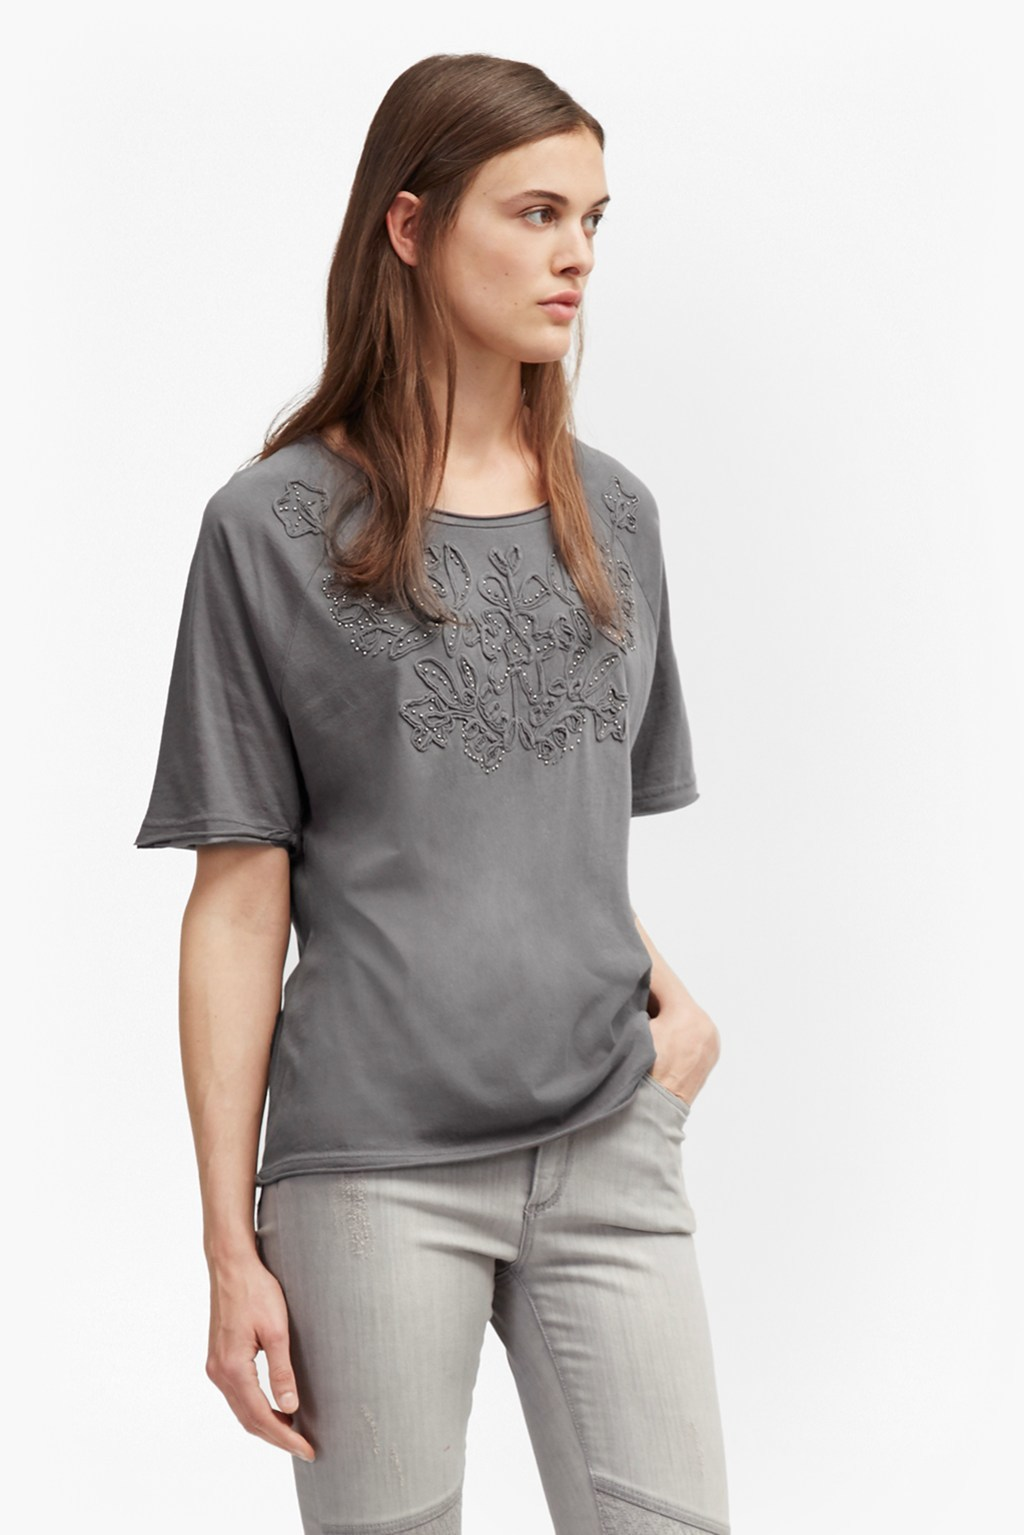 Esme Ribbon Embellished T Shirt Washed Black - neckline: round neck; style: t-shirt; predominant colour: mid grey; occasions: casual; length: standard; fibres: cotton - 100%; fit: loose; sleeve length: short sleeve; sleeve style: standard; pattern type: fabric; pattern: patterned/print; texture group: jersey - stretchy/drapey; season: a/w 2016; wardrobe: highlight